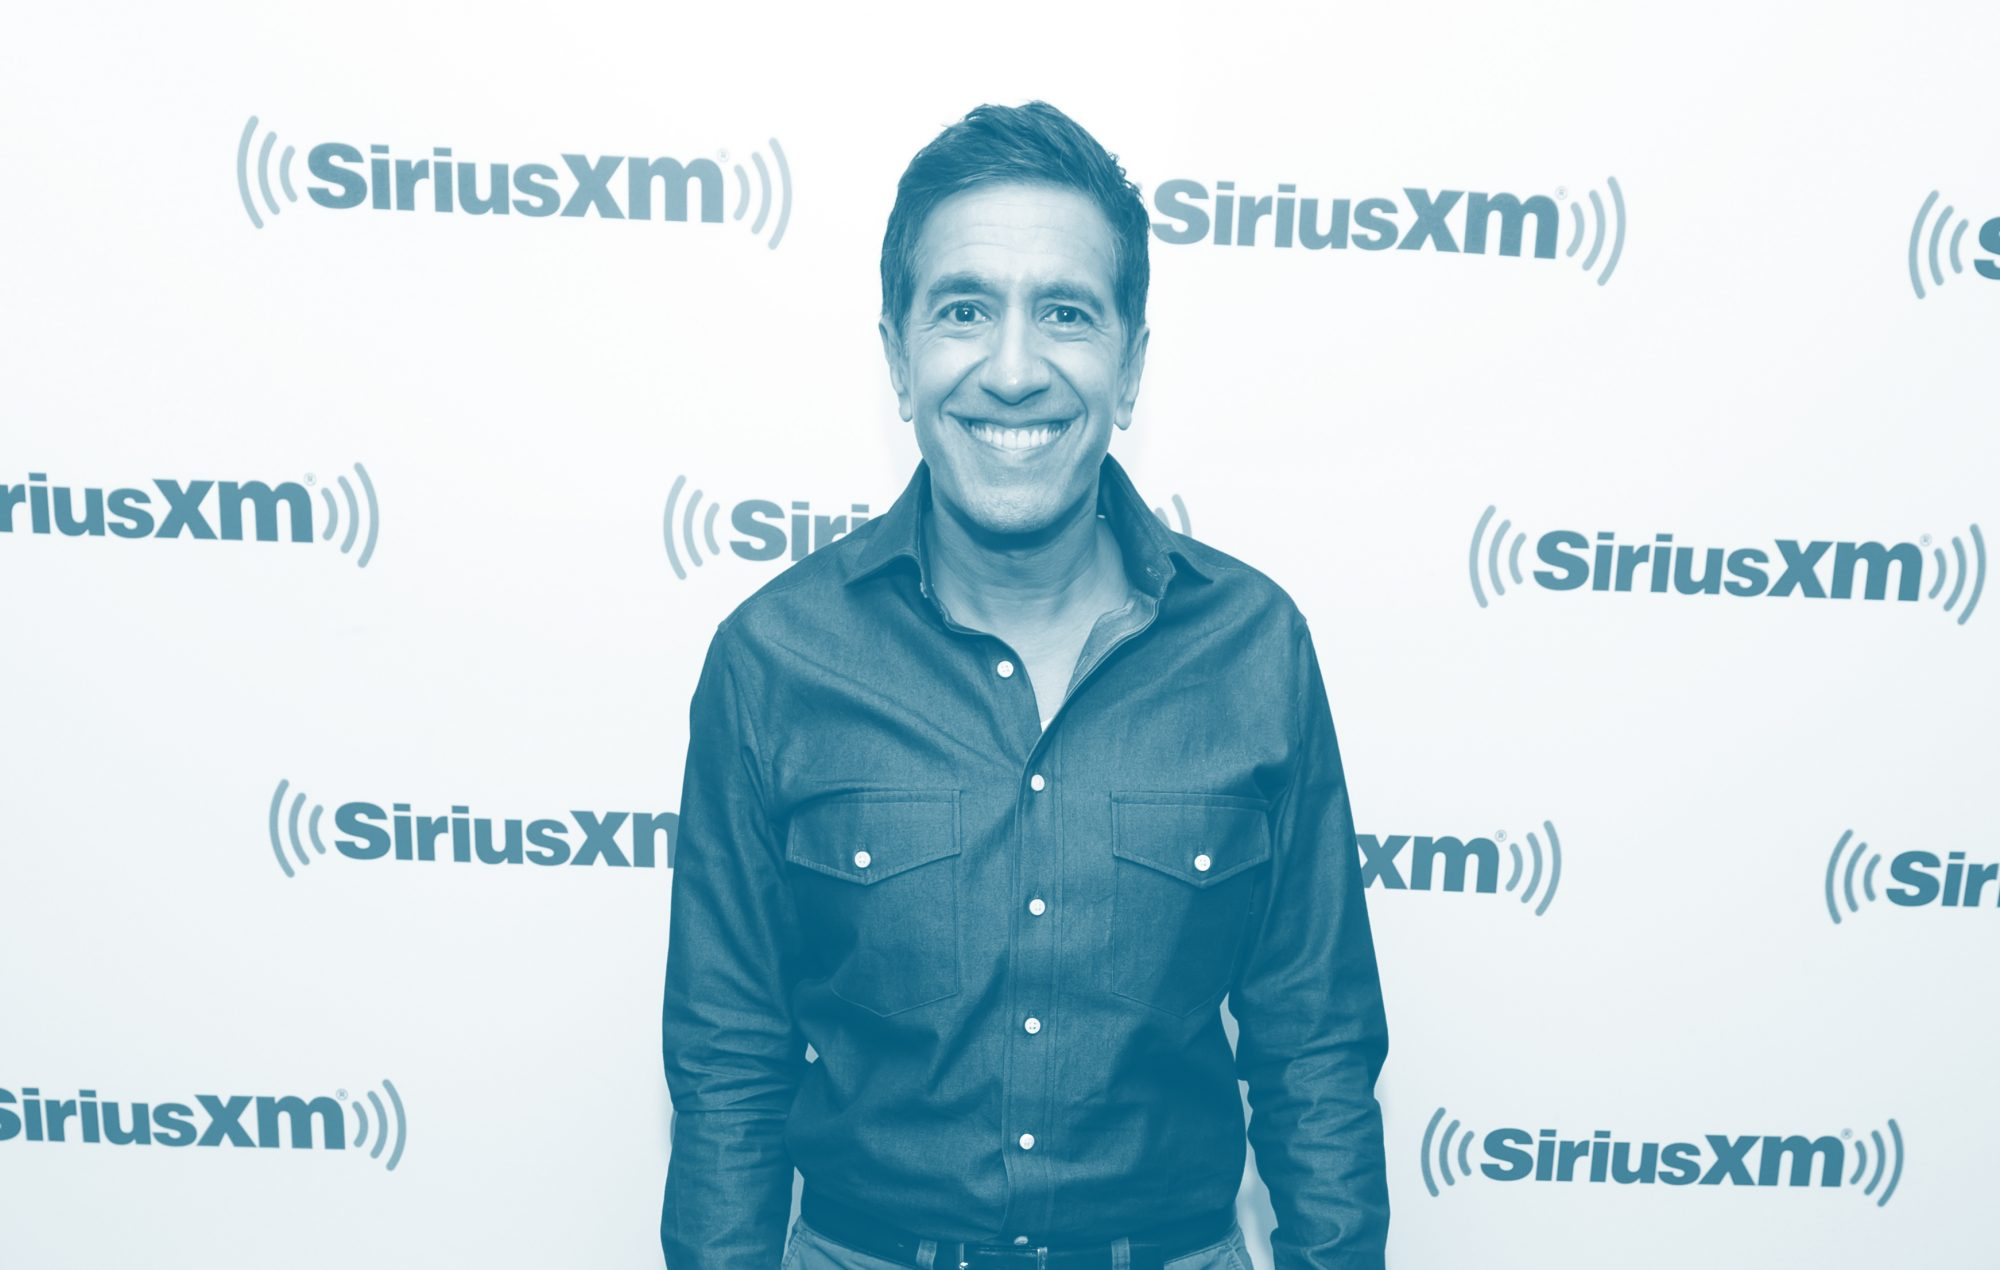 Dr. Sanjay Gupta Says the Keto Diet Can Help You Lose Weight Quickly—But It's Not for Everyone